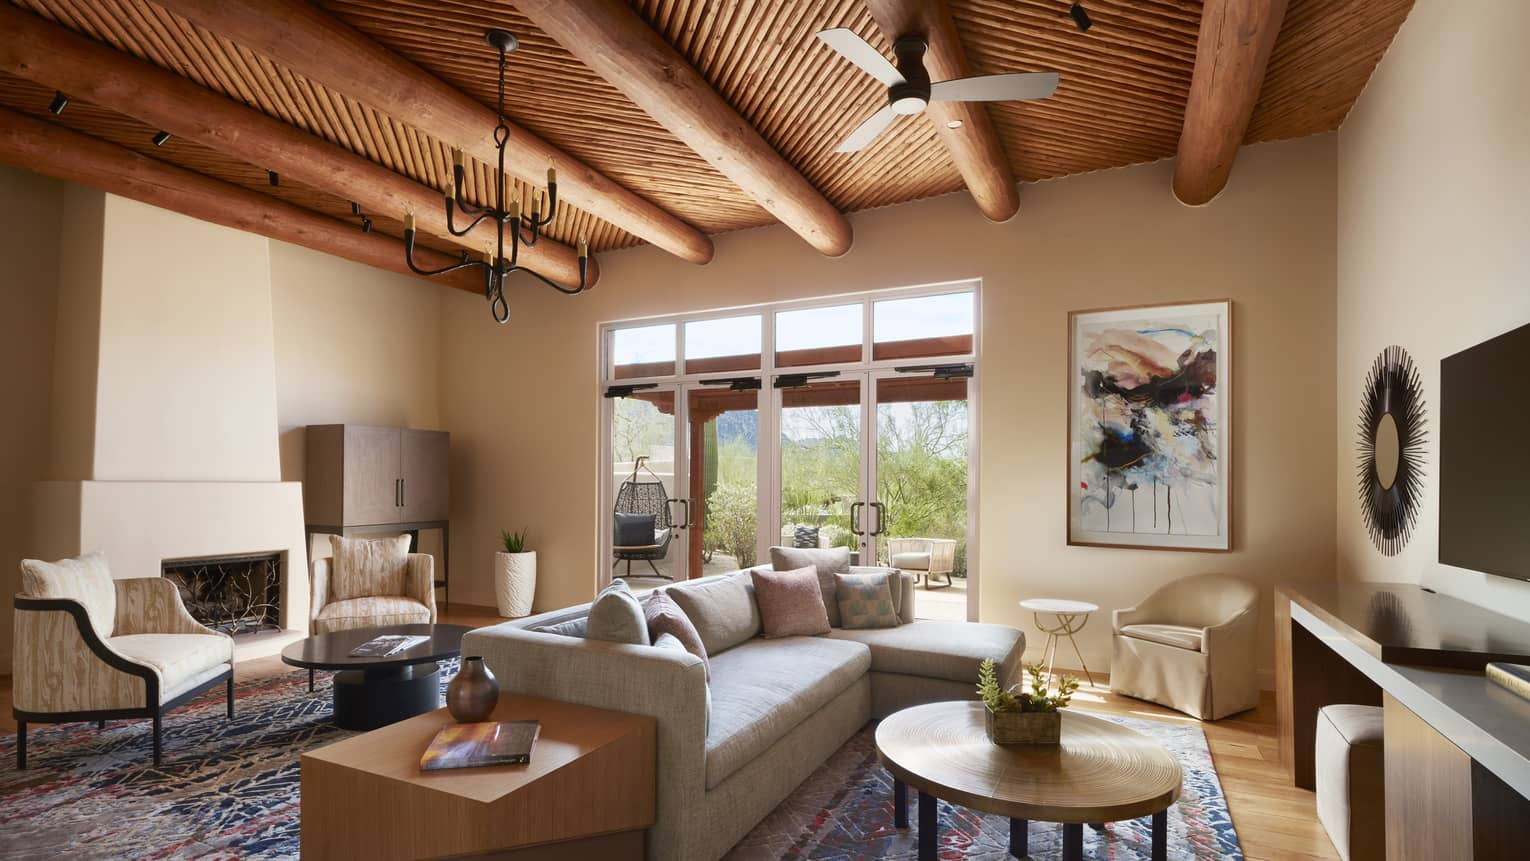 Prescott Suite seating areas under beam ceiling with small fan